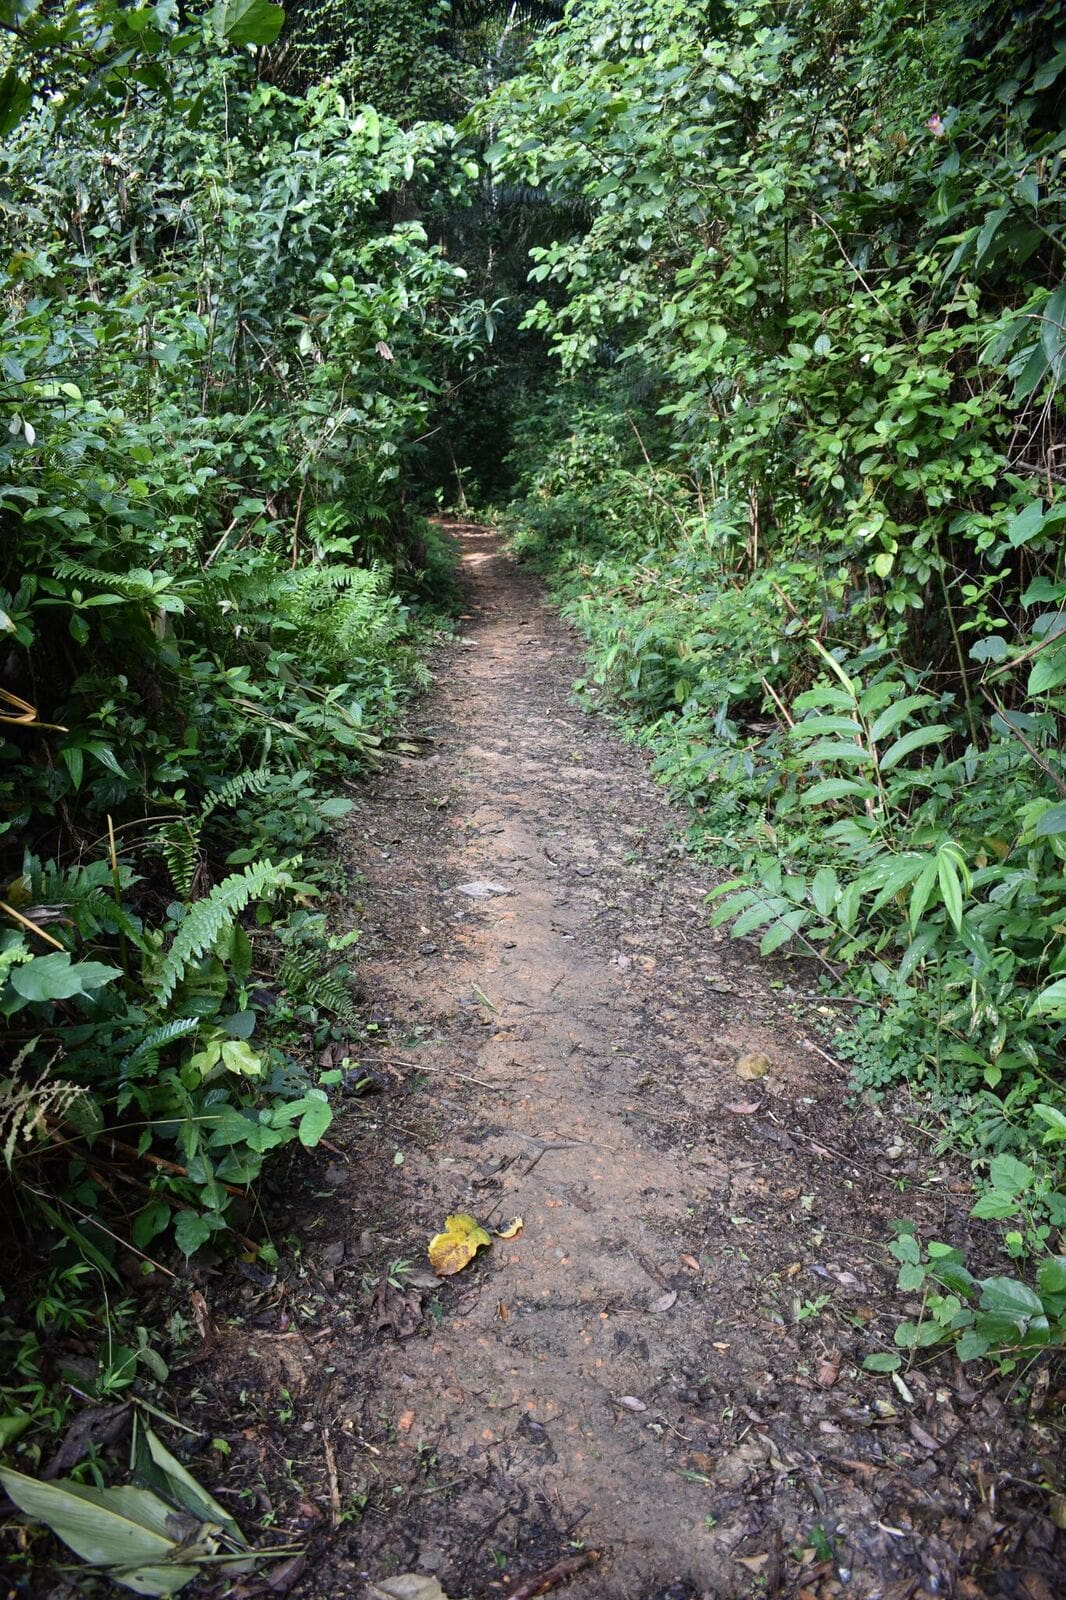 gabon jungle path